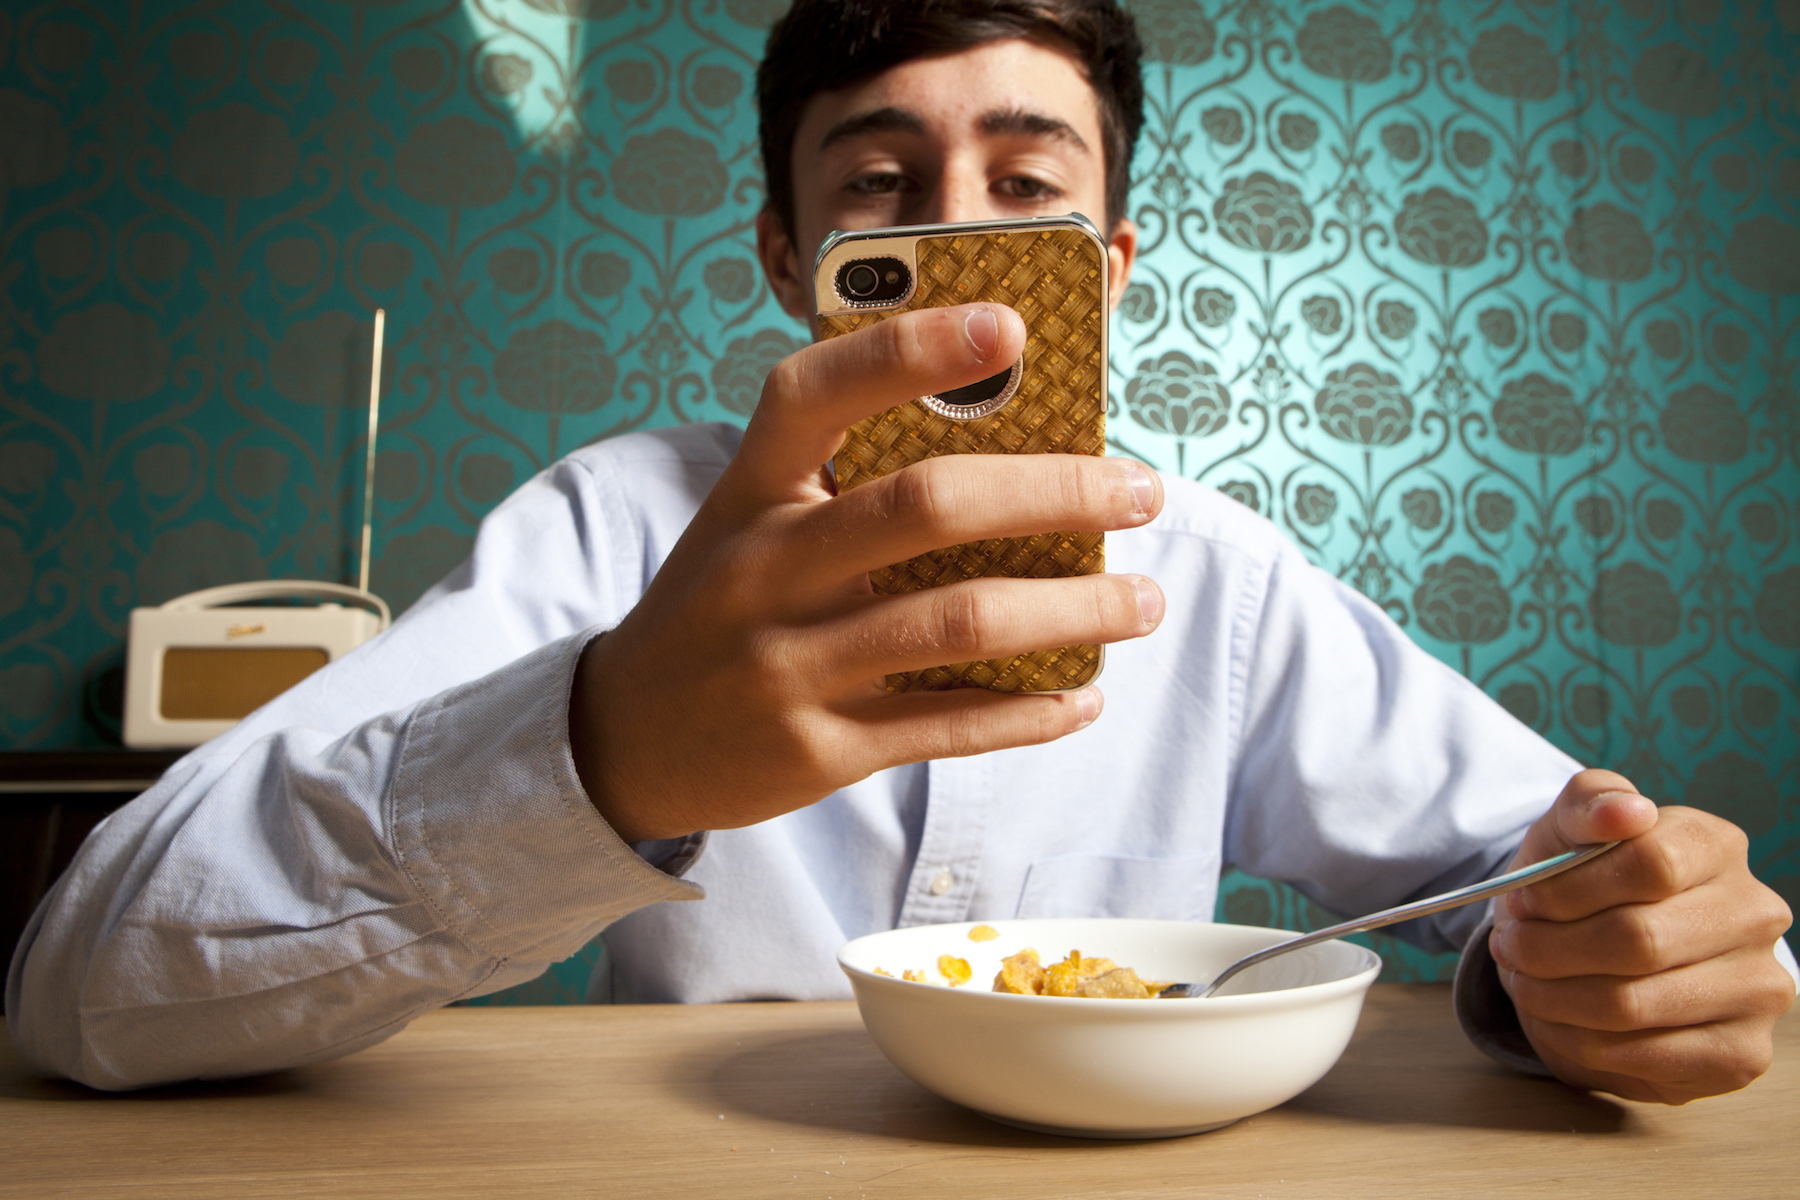 Does Your Teen Have a Phone Addiction?